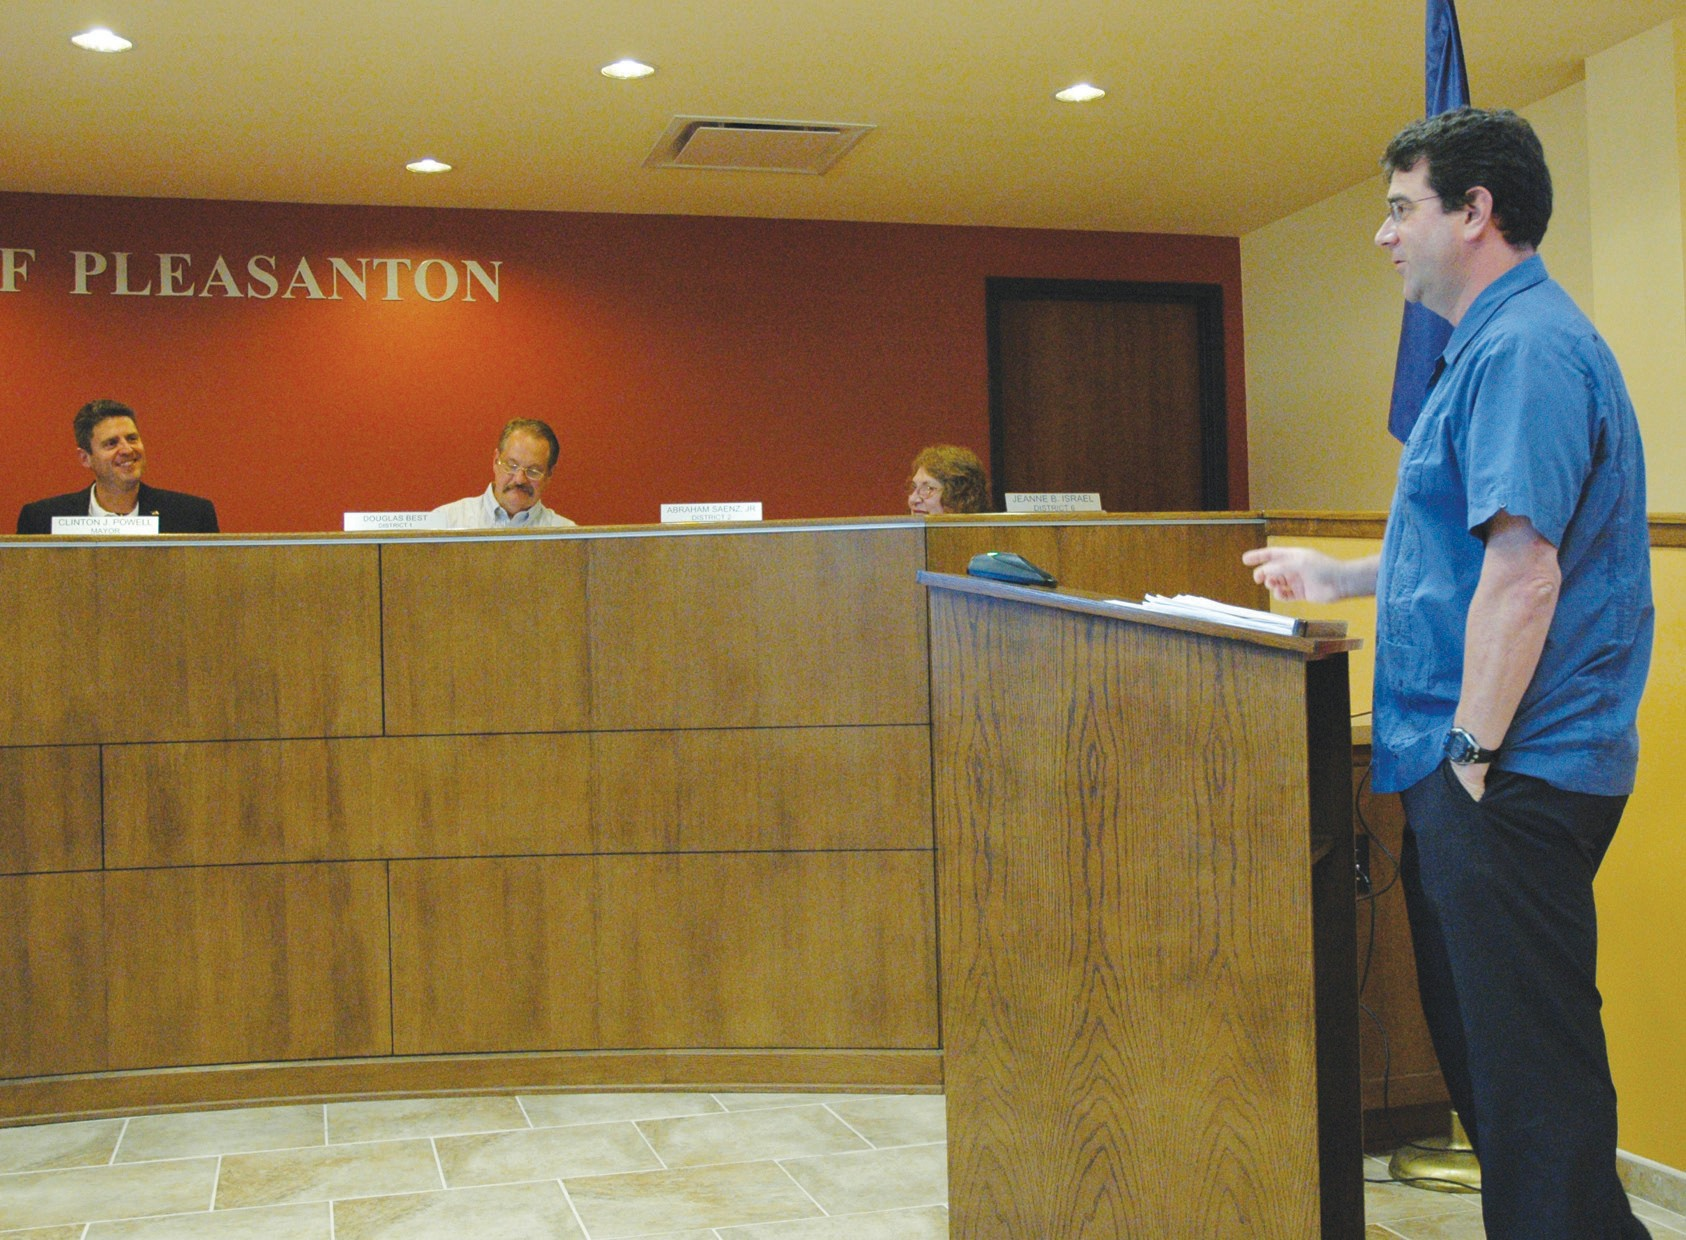 Chris Stewart (right) of Stewart Planning Consulting, LLC, presents the Impact Fee Study for Land Use Assumption/ Capital Improvement Plans at the May 28 meeting. Mayor Clint Powell (from right), Doug Best, Council Member District 1 and Jeanne Israel, Council Member District 6 join other council members in the discussion.